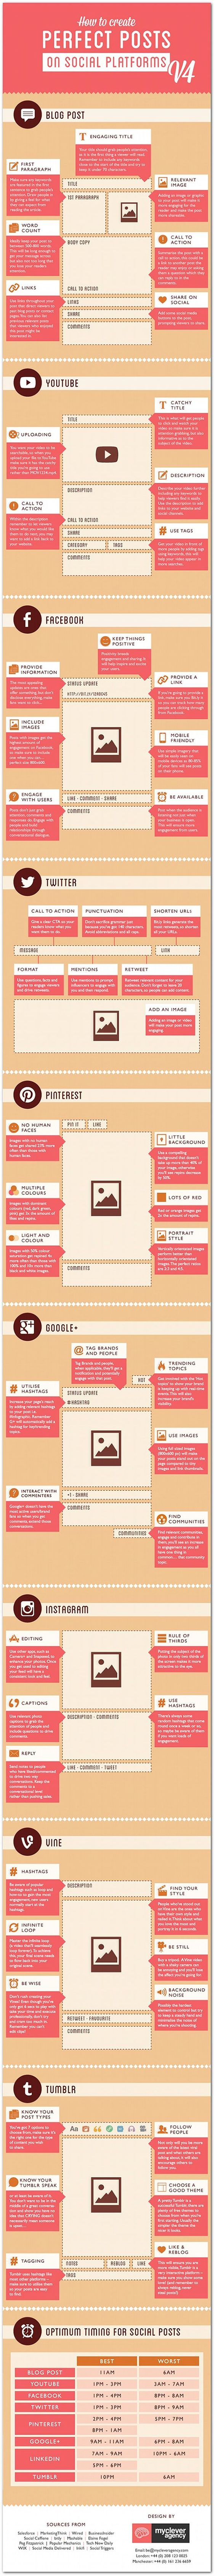 [INFOGRAPHIC] Guide to Perfect Social Media Posts for a blog; YouTube; Facebook; Twitter; Pinterest; Google+; Instagram; Vine; and Tumblr: Title; Image; First paragraph; Word count; Call-to-action; Links; Social Media share; Best times; Details.: